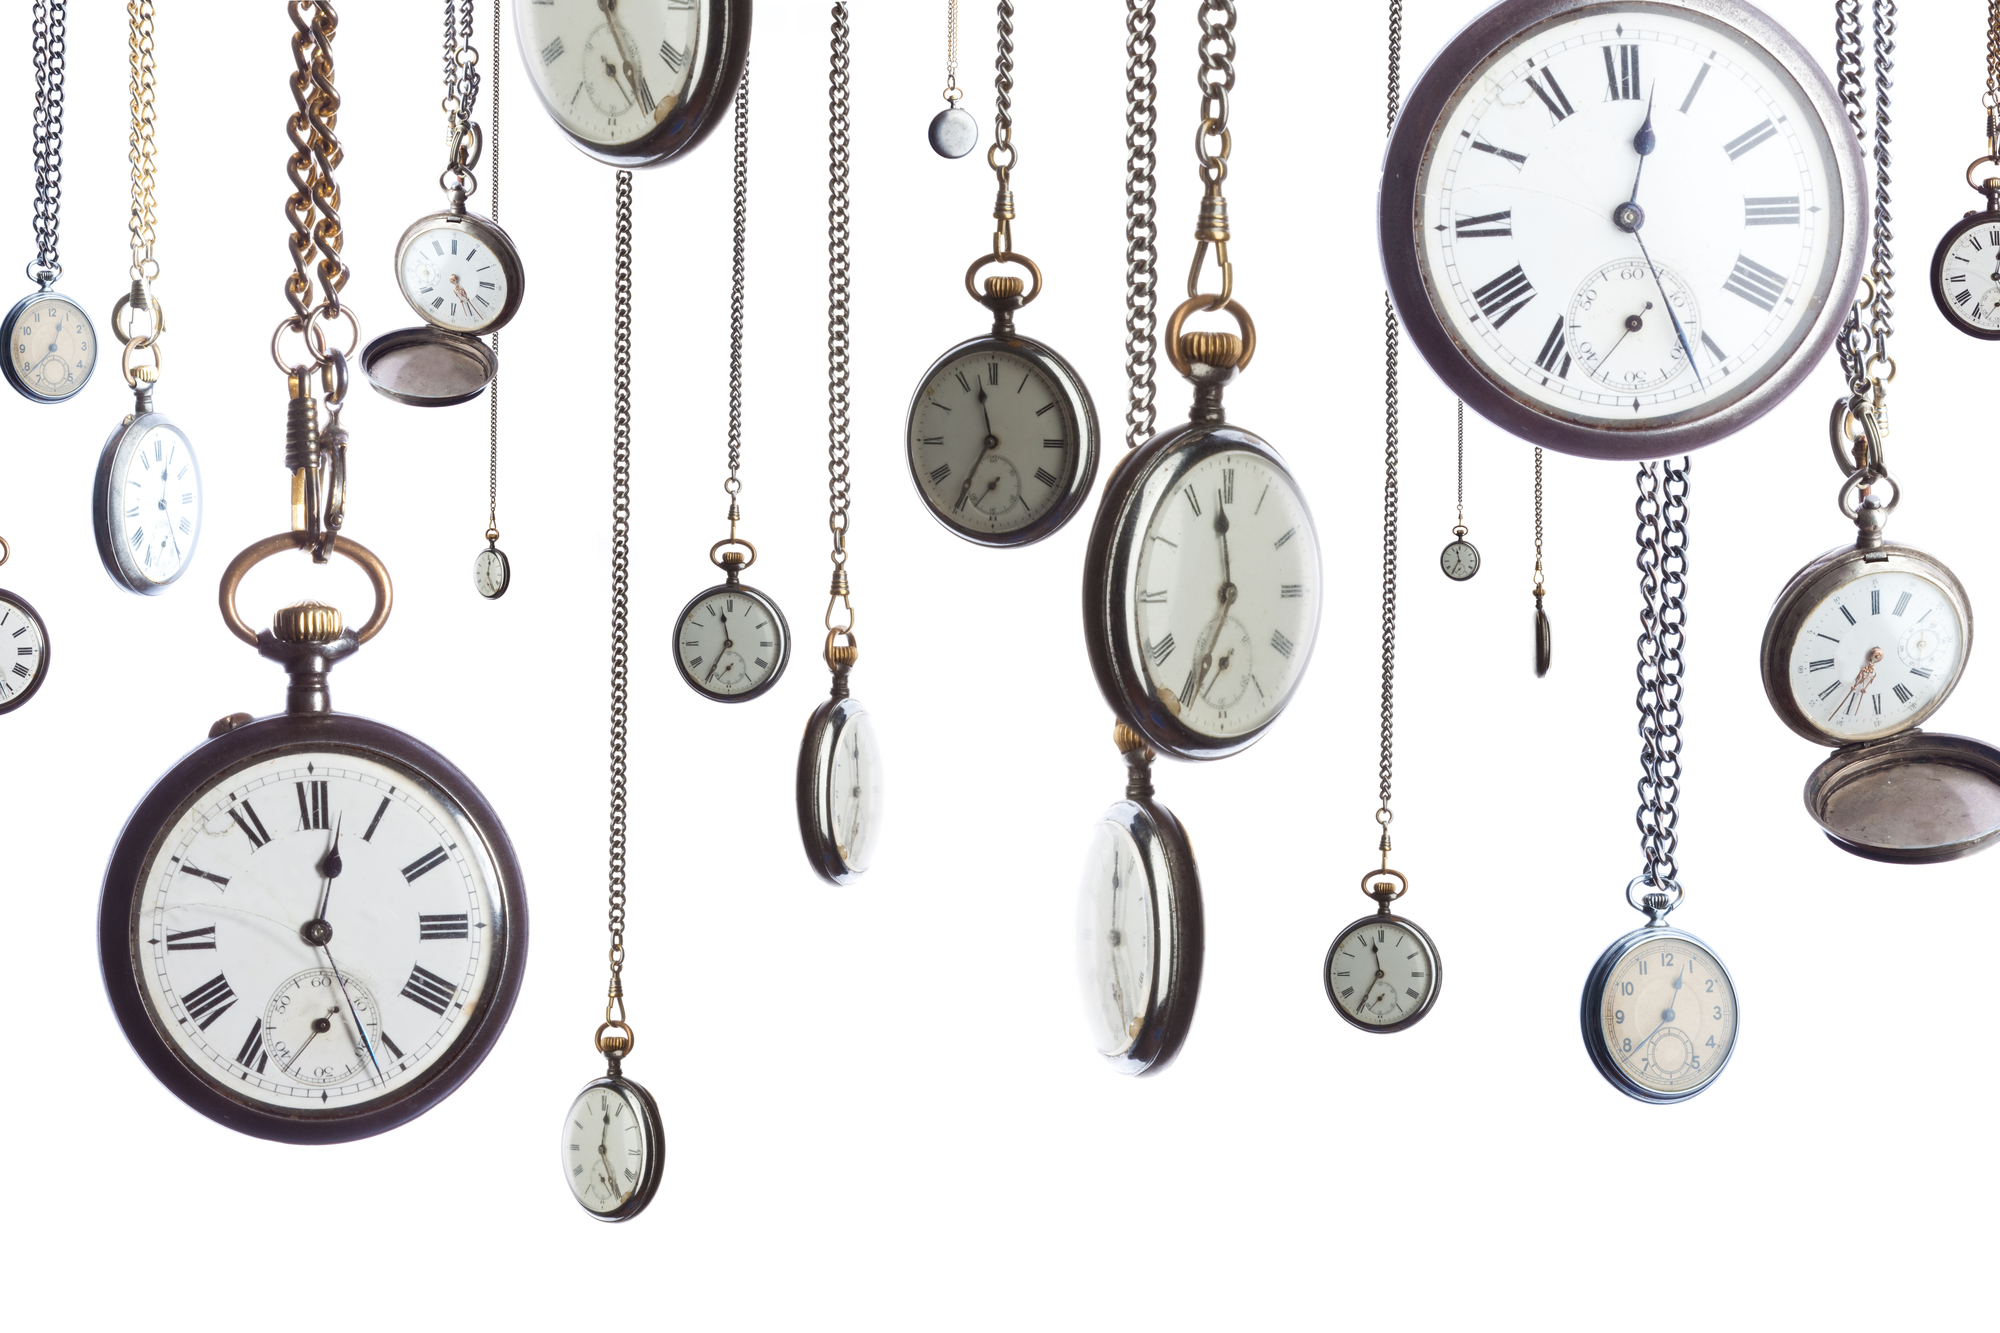 Pocket watches on chain isolated